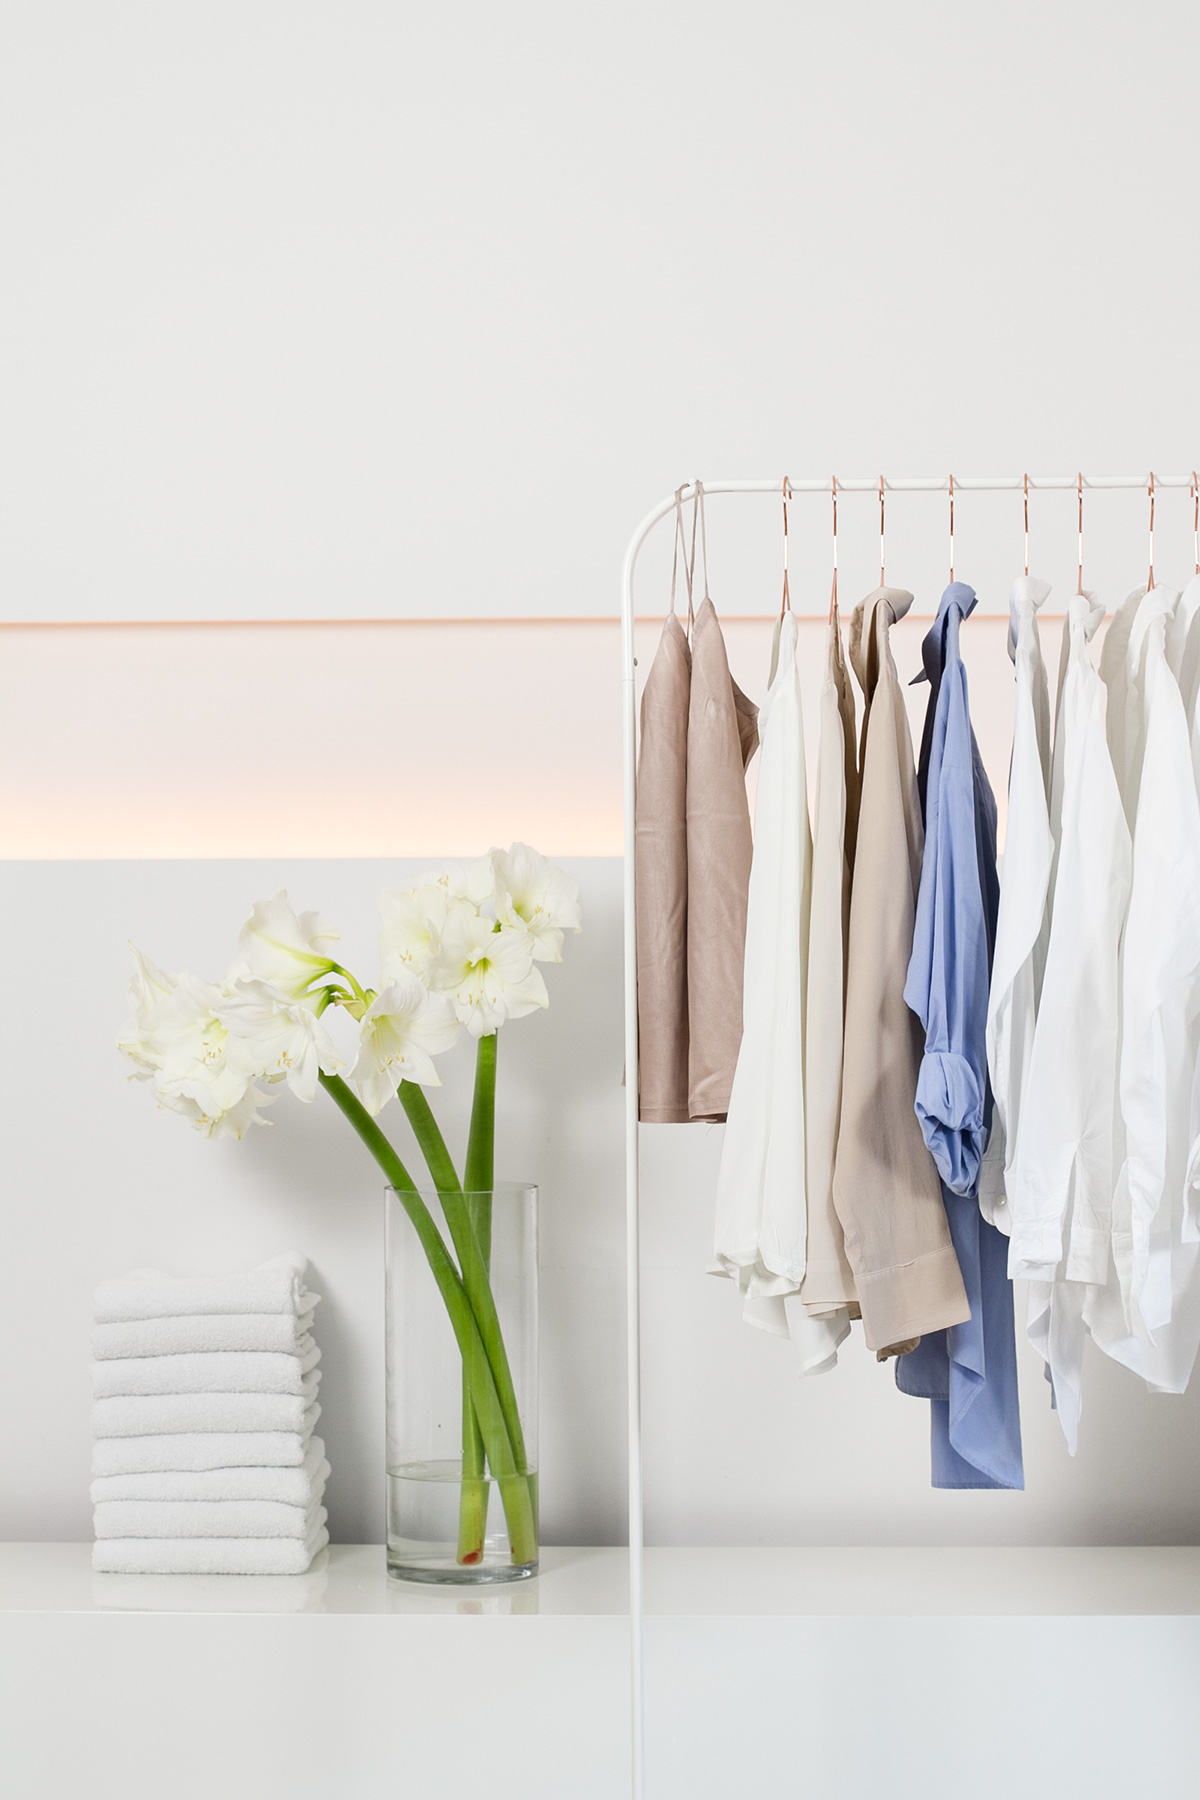 laundry, white flowers, white towels, clotheshorse with white, nude and light blue shirts, picture from LG TwinWash washer blog post on lifetime-pieces.com